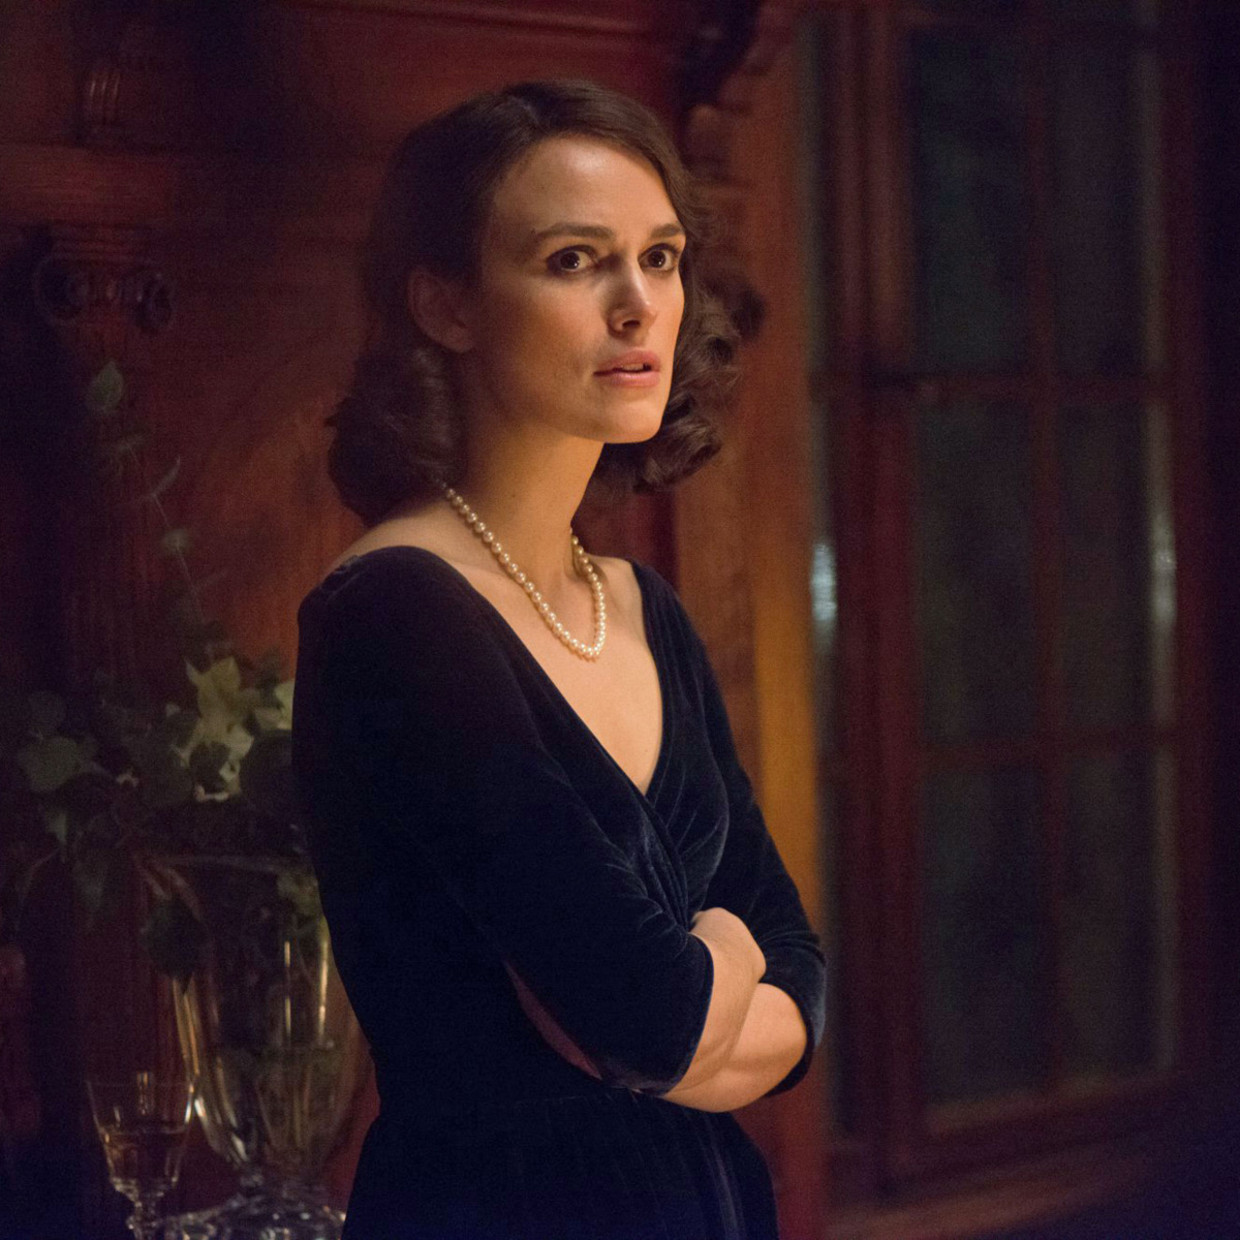 Keira Knightley in The Aftermath. Beeld